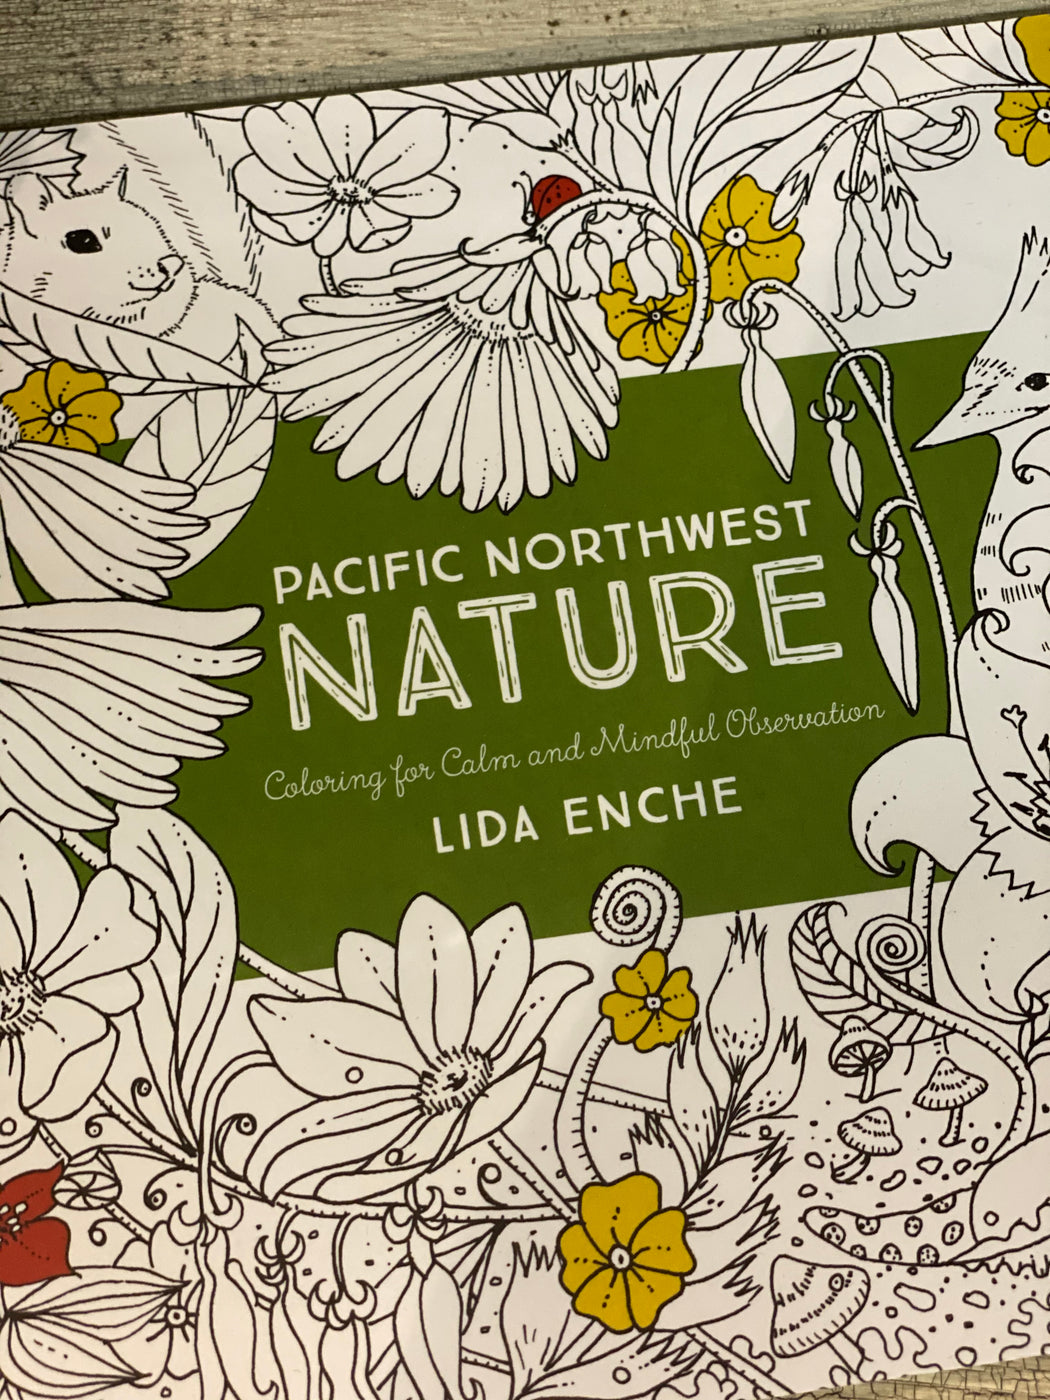 Two of our favorite things, in one box! Settle in for a little down time with a fresh pack of gel pens and our PNW nature coloring book, or get creative with your pens and draw your own picture in this Oregon themed notebook.